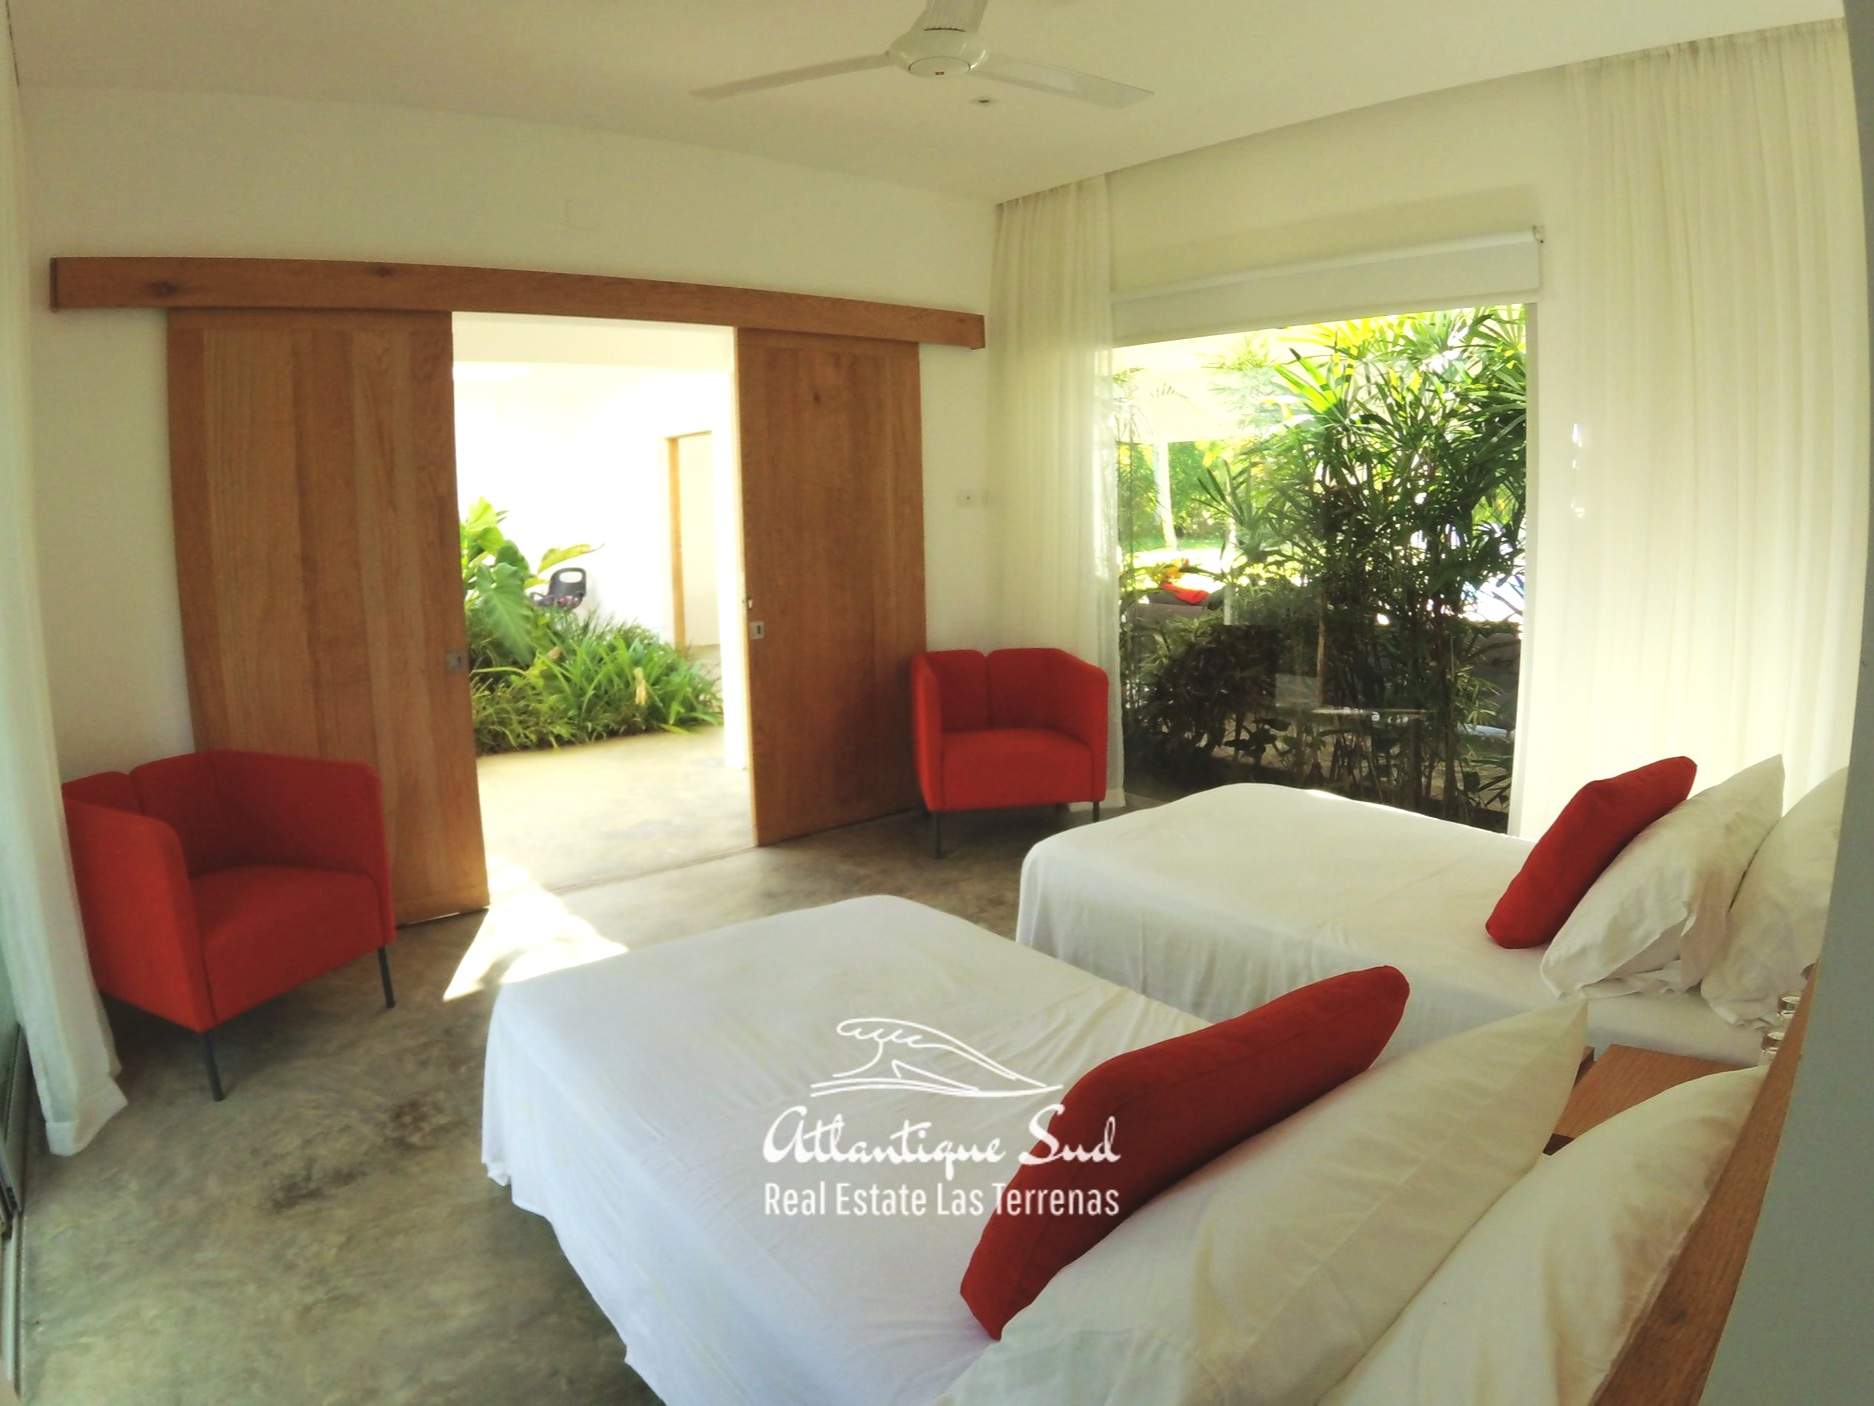 Bedroom 6 villa for sale Las terrenas-min.JPG